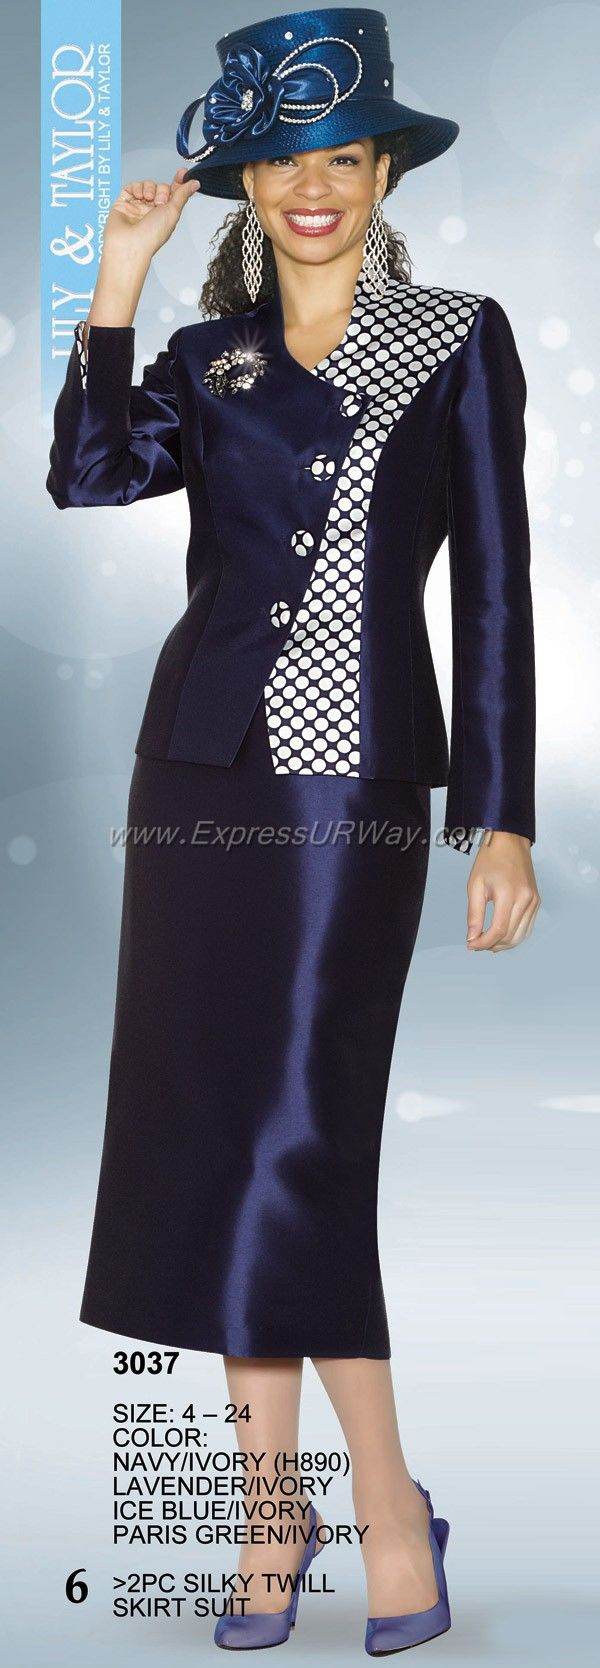 Mode Collection by Lily and Taylor - www.ExpressURWay.com - Lily and Taylor Mode, Womens Suits, Womens Designer Suits, Ladies Suits, Suits For Women, Church Suits